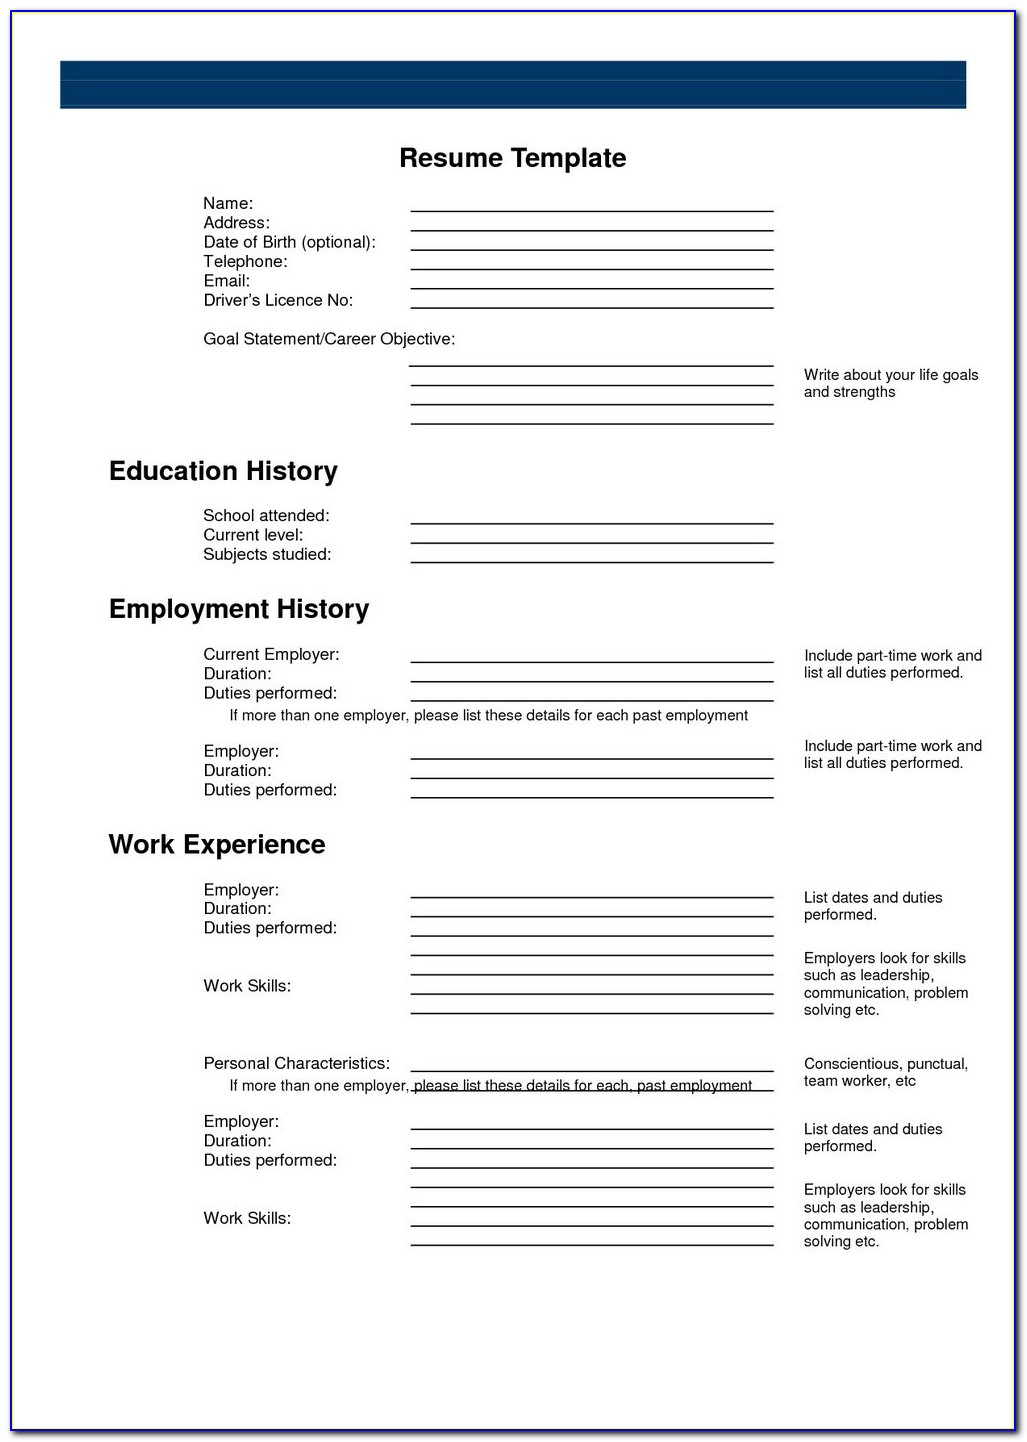 Blank Resume Form Download